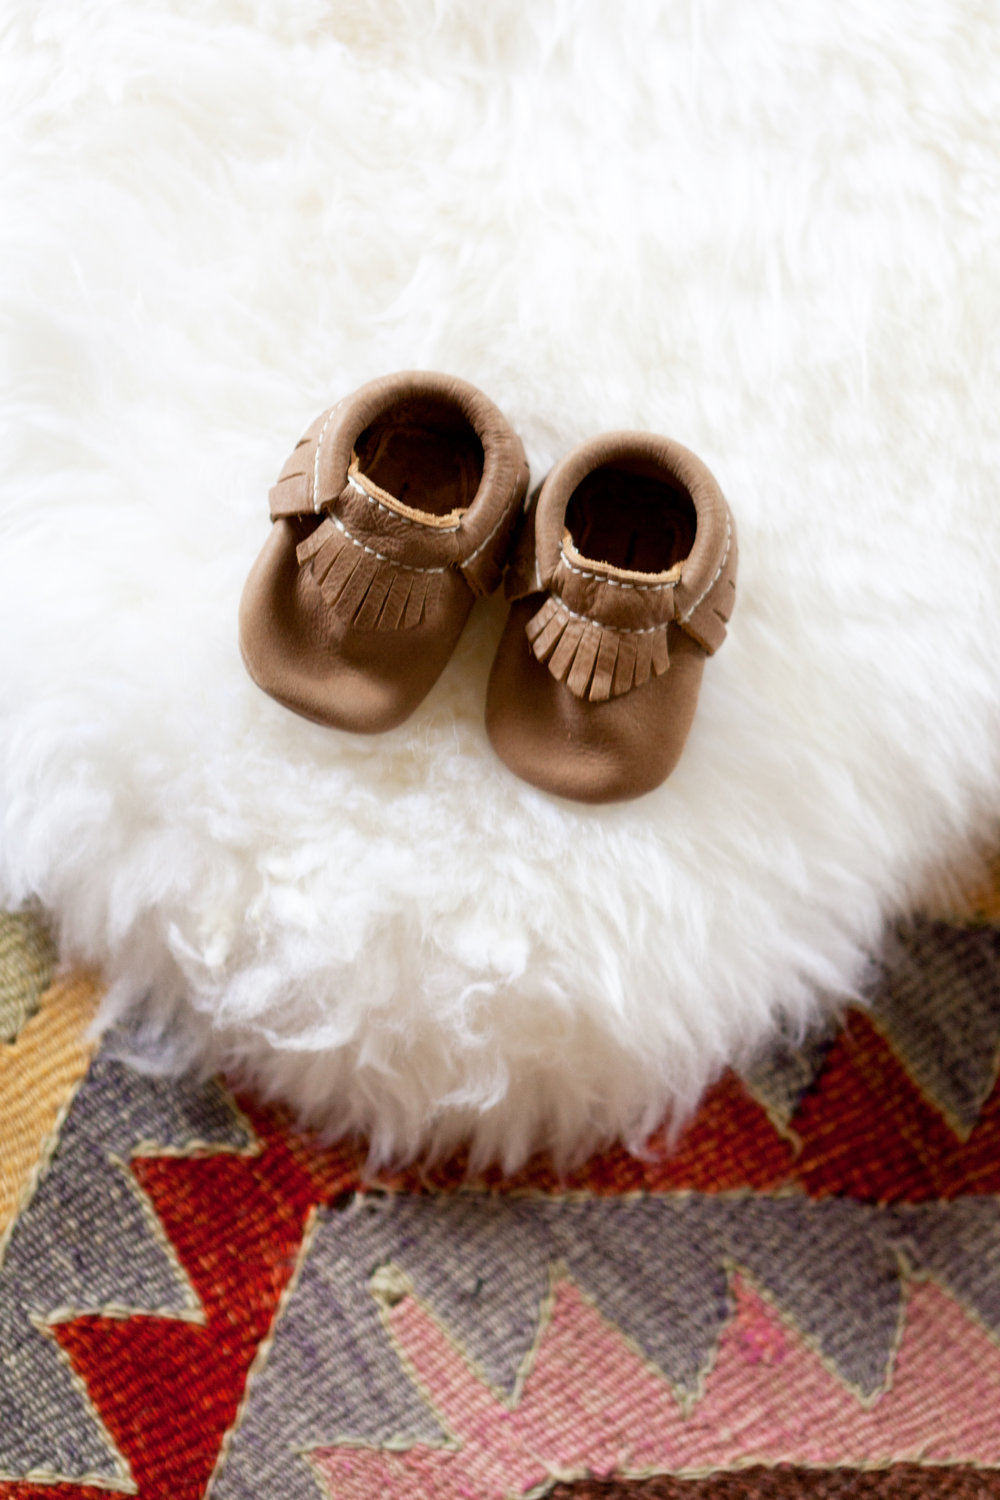 A softer thick sheepskin over a rough thin kilim in a nursery.